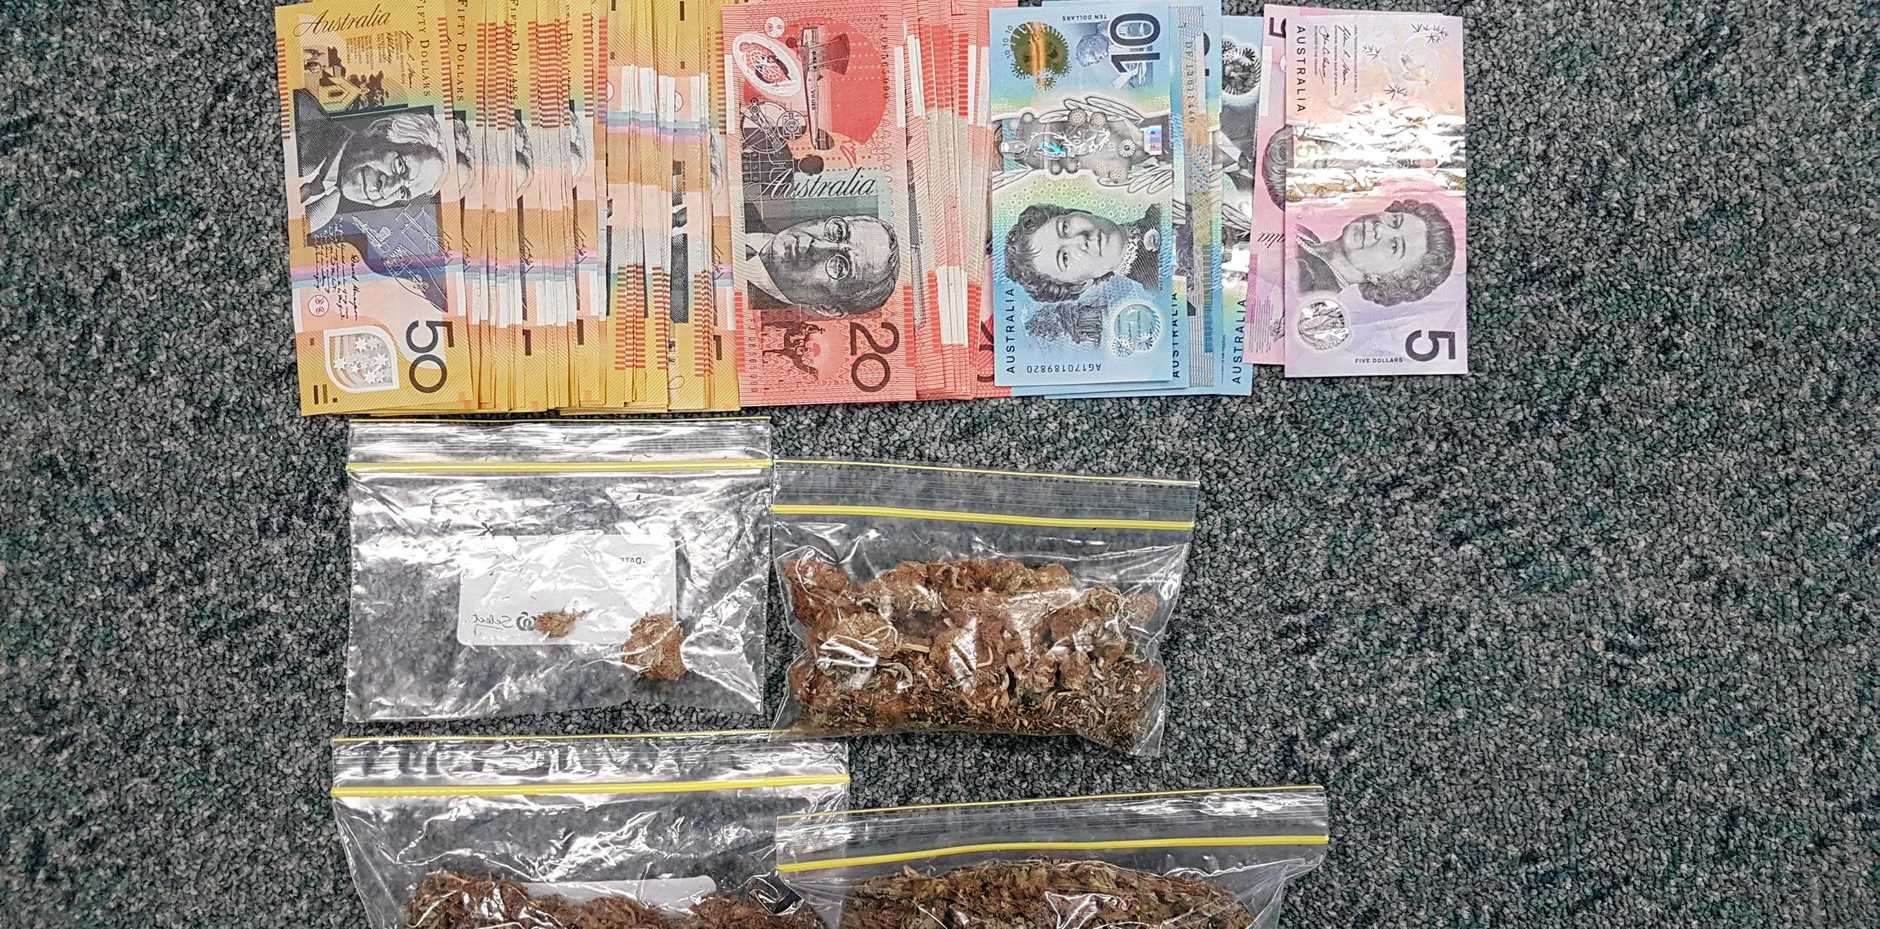 Police allegedly found these items in an Andergrove home.